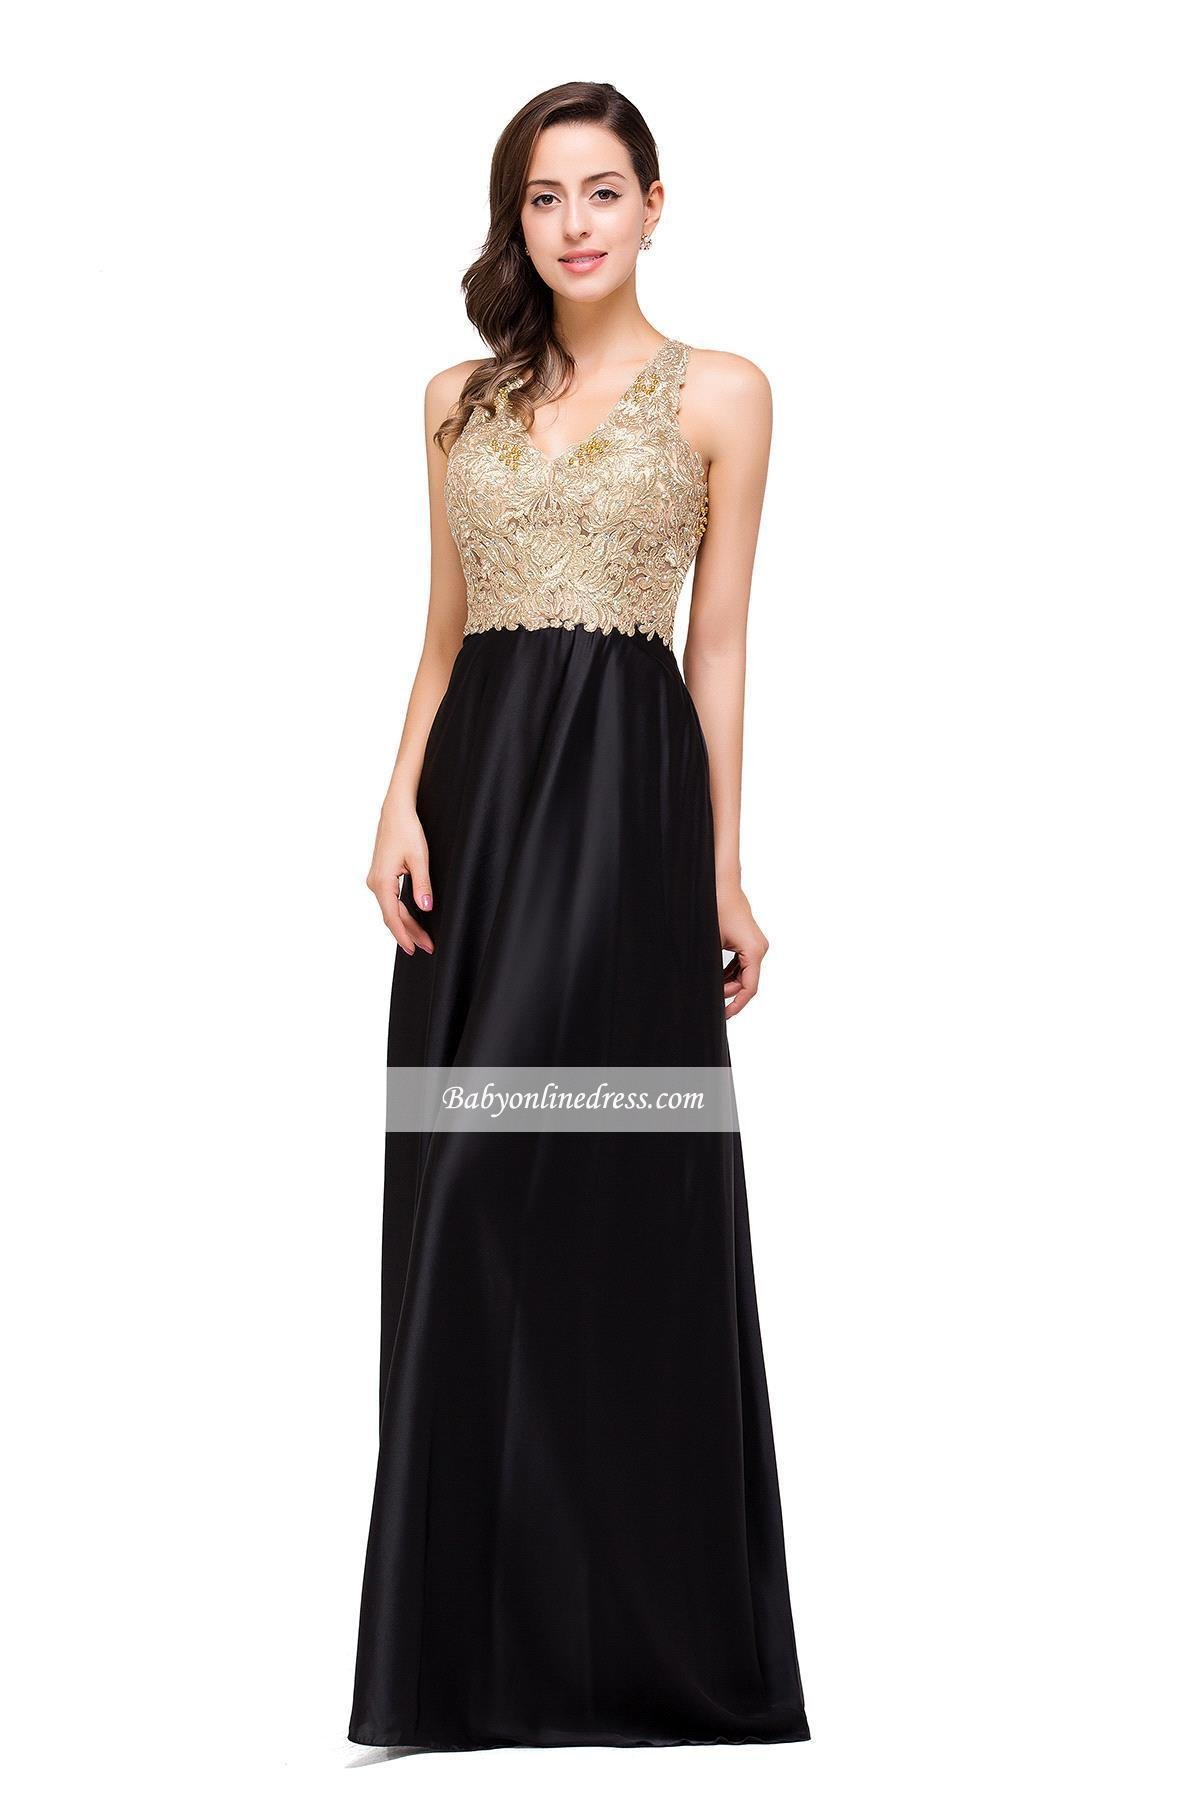 Best Christmas Gift~ Big Promotion For Christmas Day!Gold Sleeveless V-Neck Black Prom Dress A-Line Open-Back Long Evening Gowns (8, Gold)